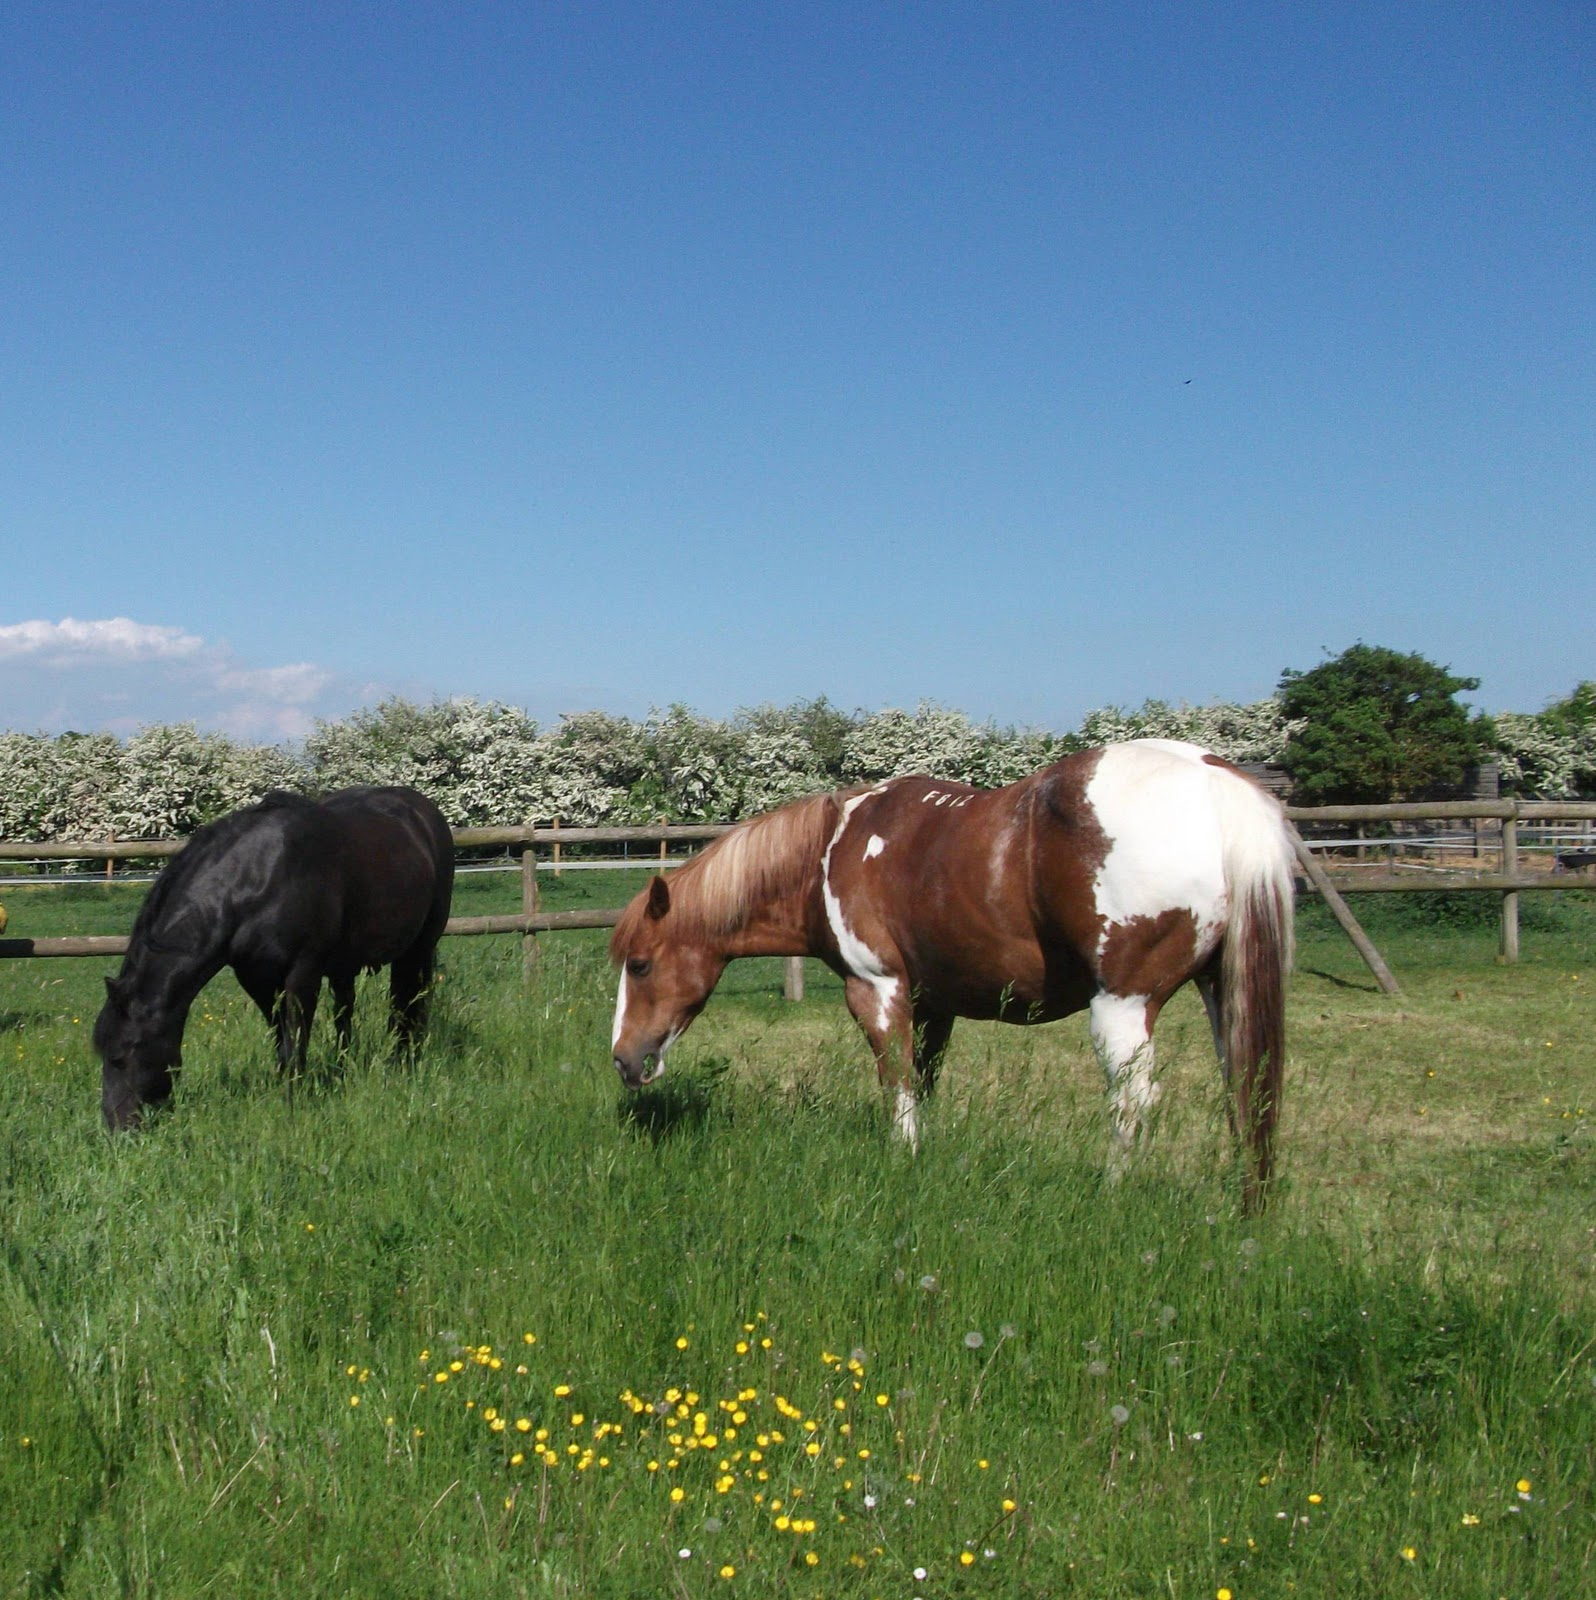 My Writing Space Overlooks Lush Welsh Countryside  And The Paddocks Where  My Two Horses Peacefully Graze